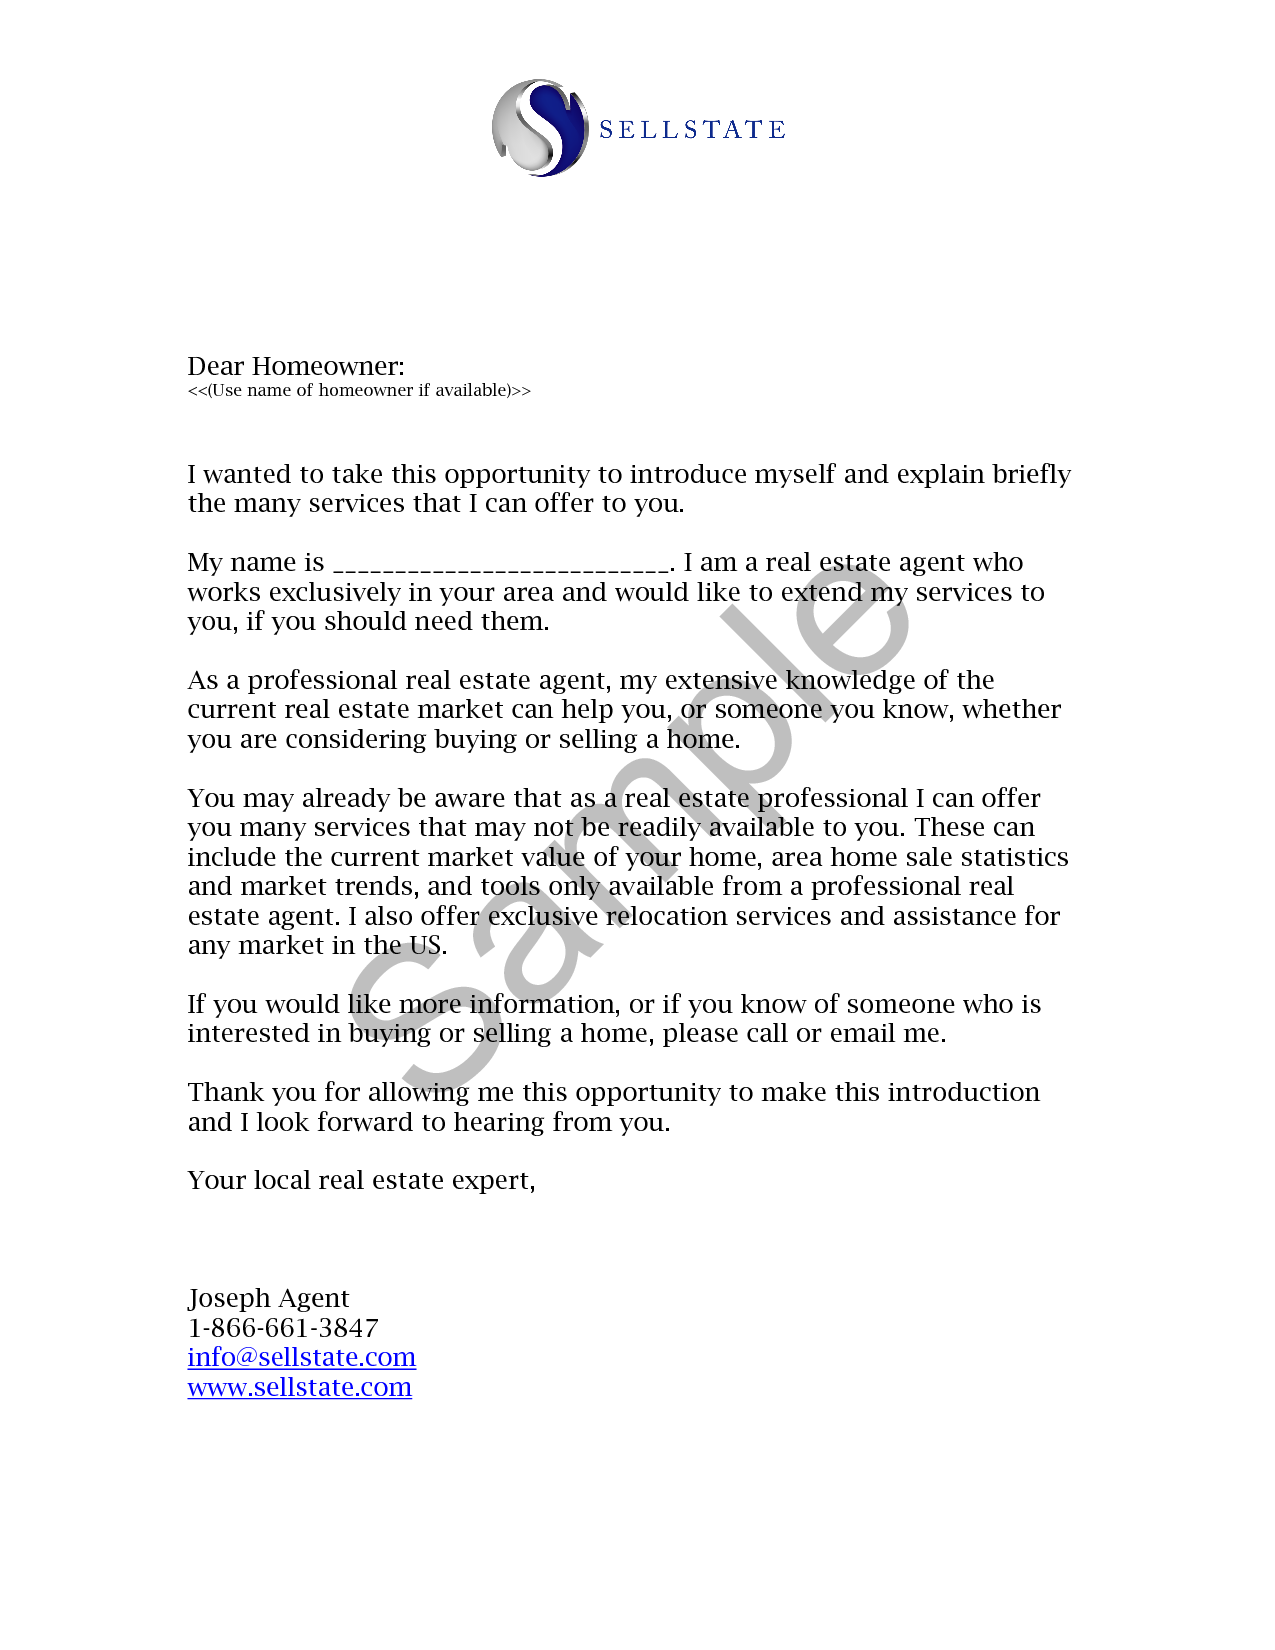 Real estate letters of introduction introduction letter real real estate letters of introduction introduction letter real estate agent jim pellerin spiritdancerdesigns Image collections